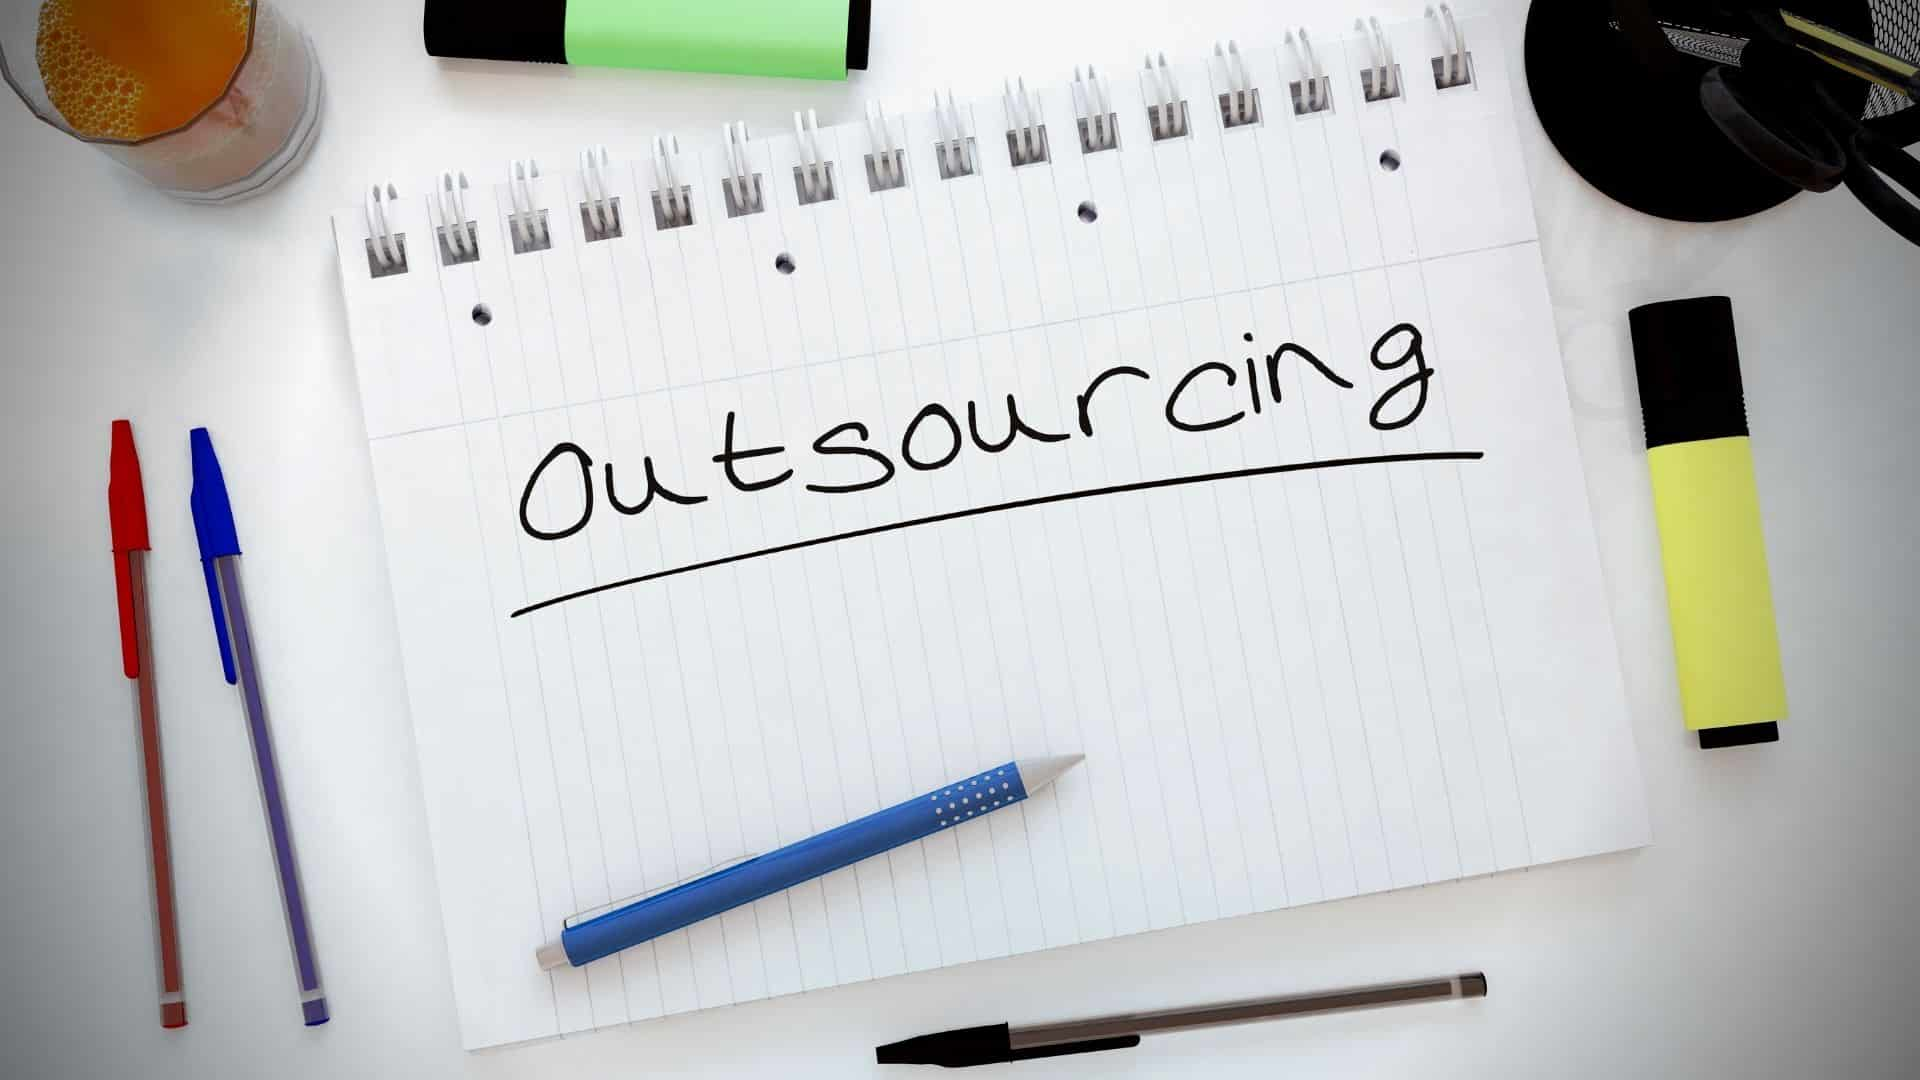 Outsourced accounting and bookkeeping services from Canada